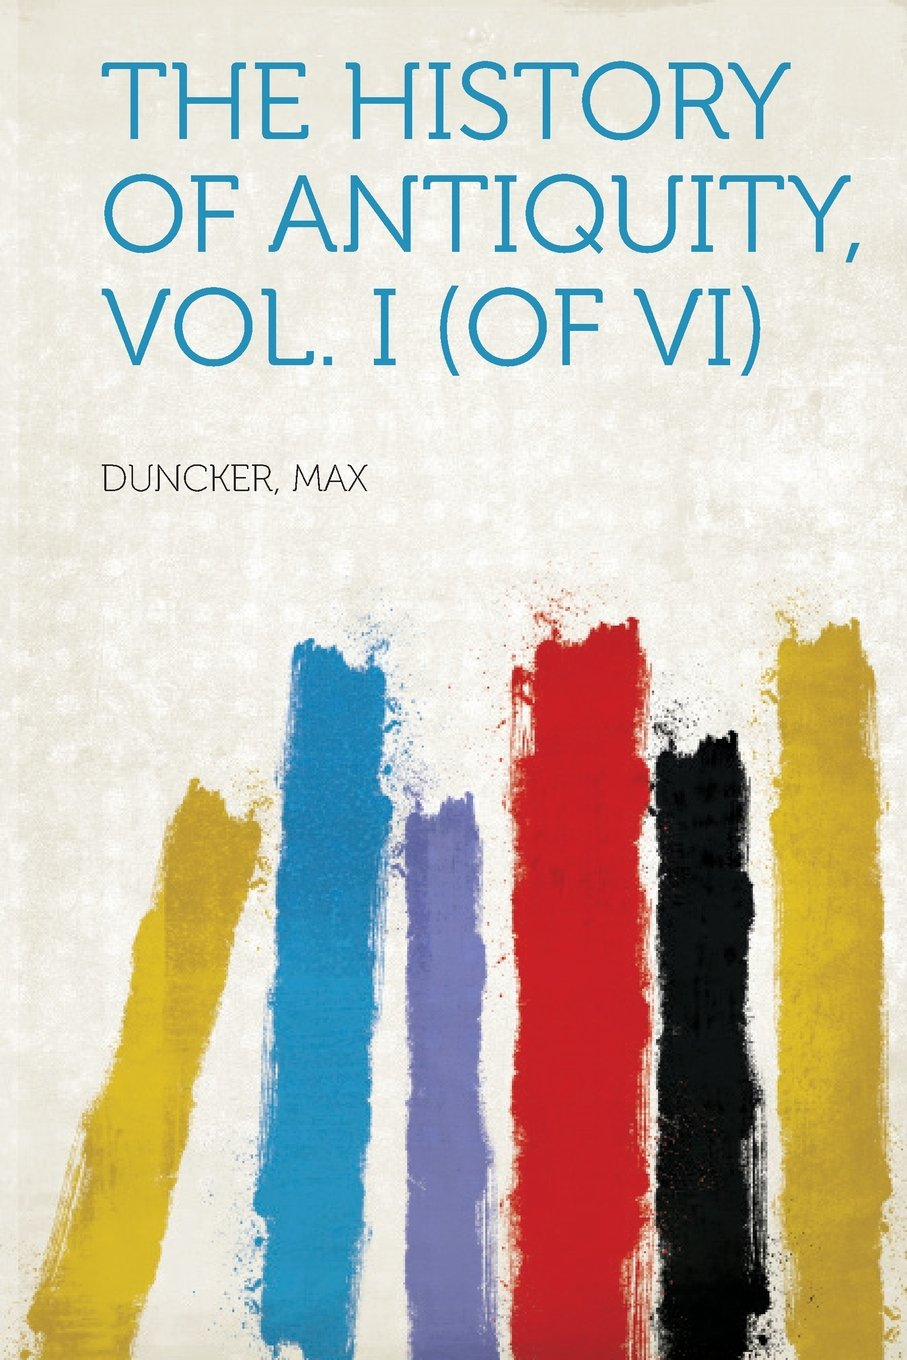 The History of Antiquity, Vol. I (of VI) ebook